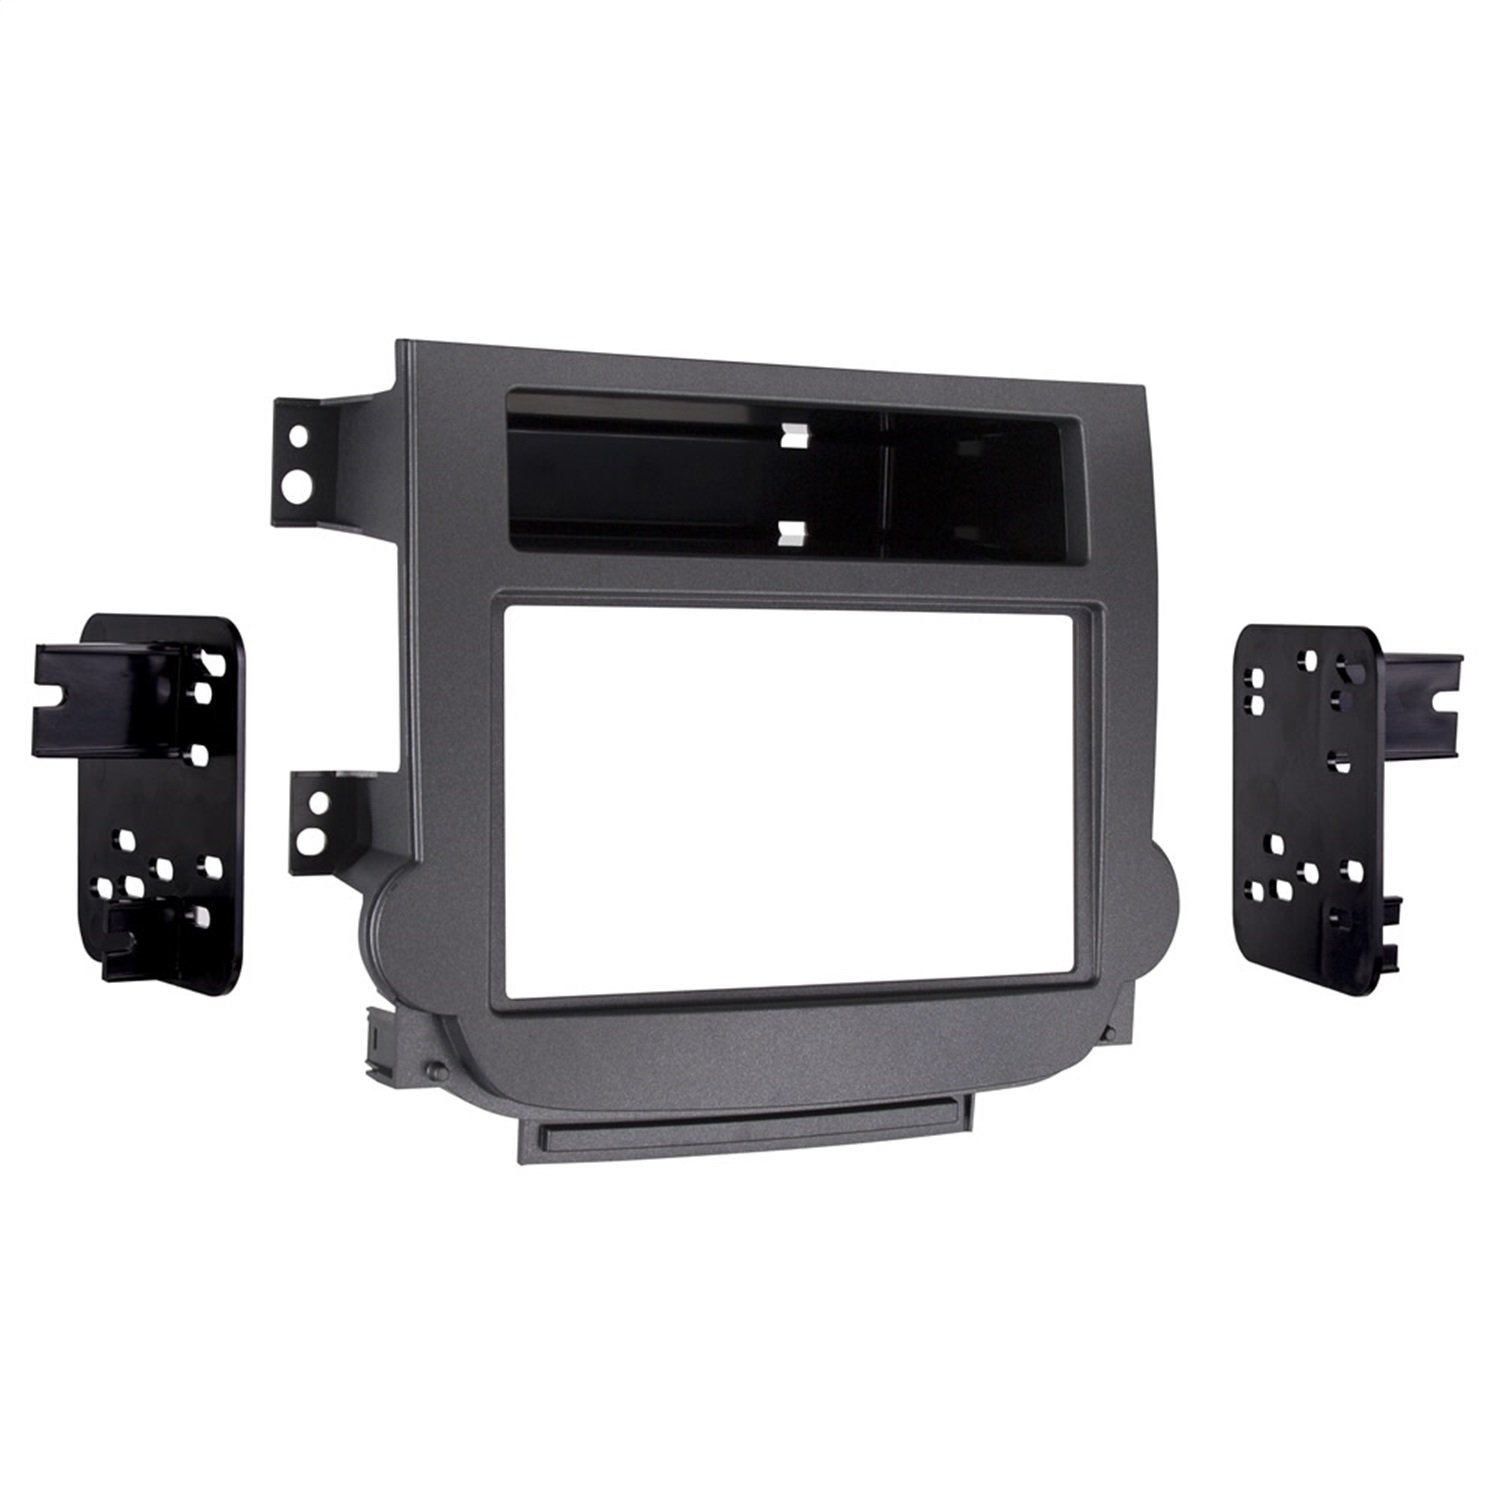 Metra 95-3314G Double DIN Dash Kit for Select 2013 and Chevy Malibu Vehicles (Black)